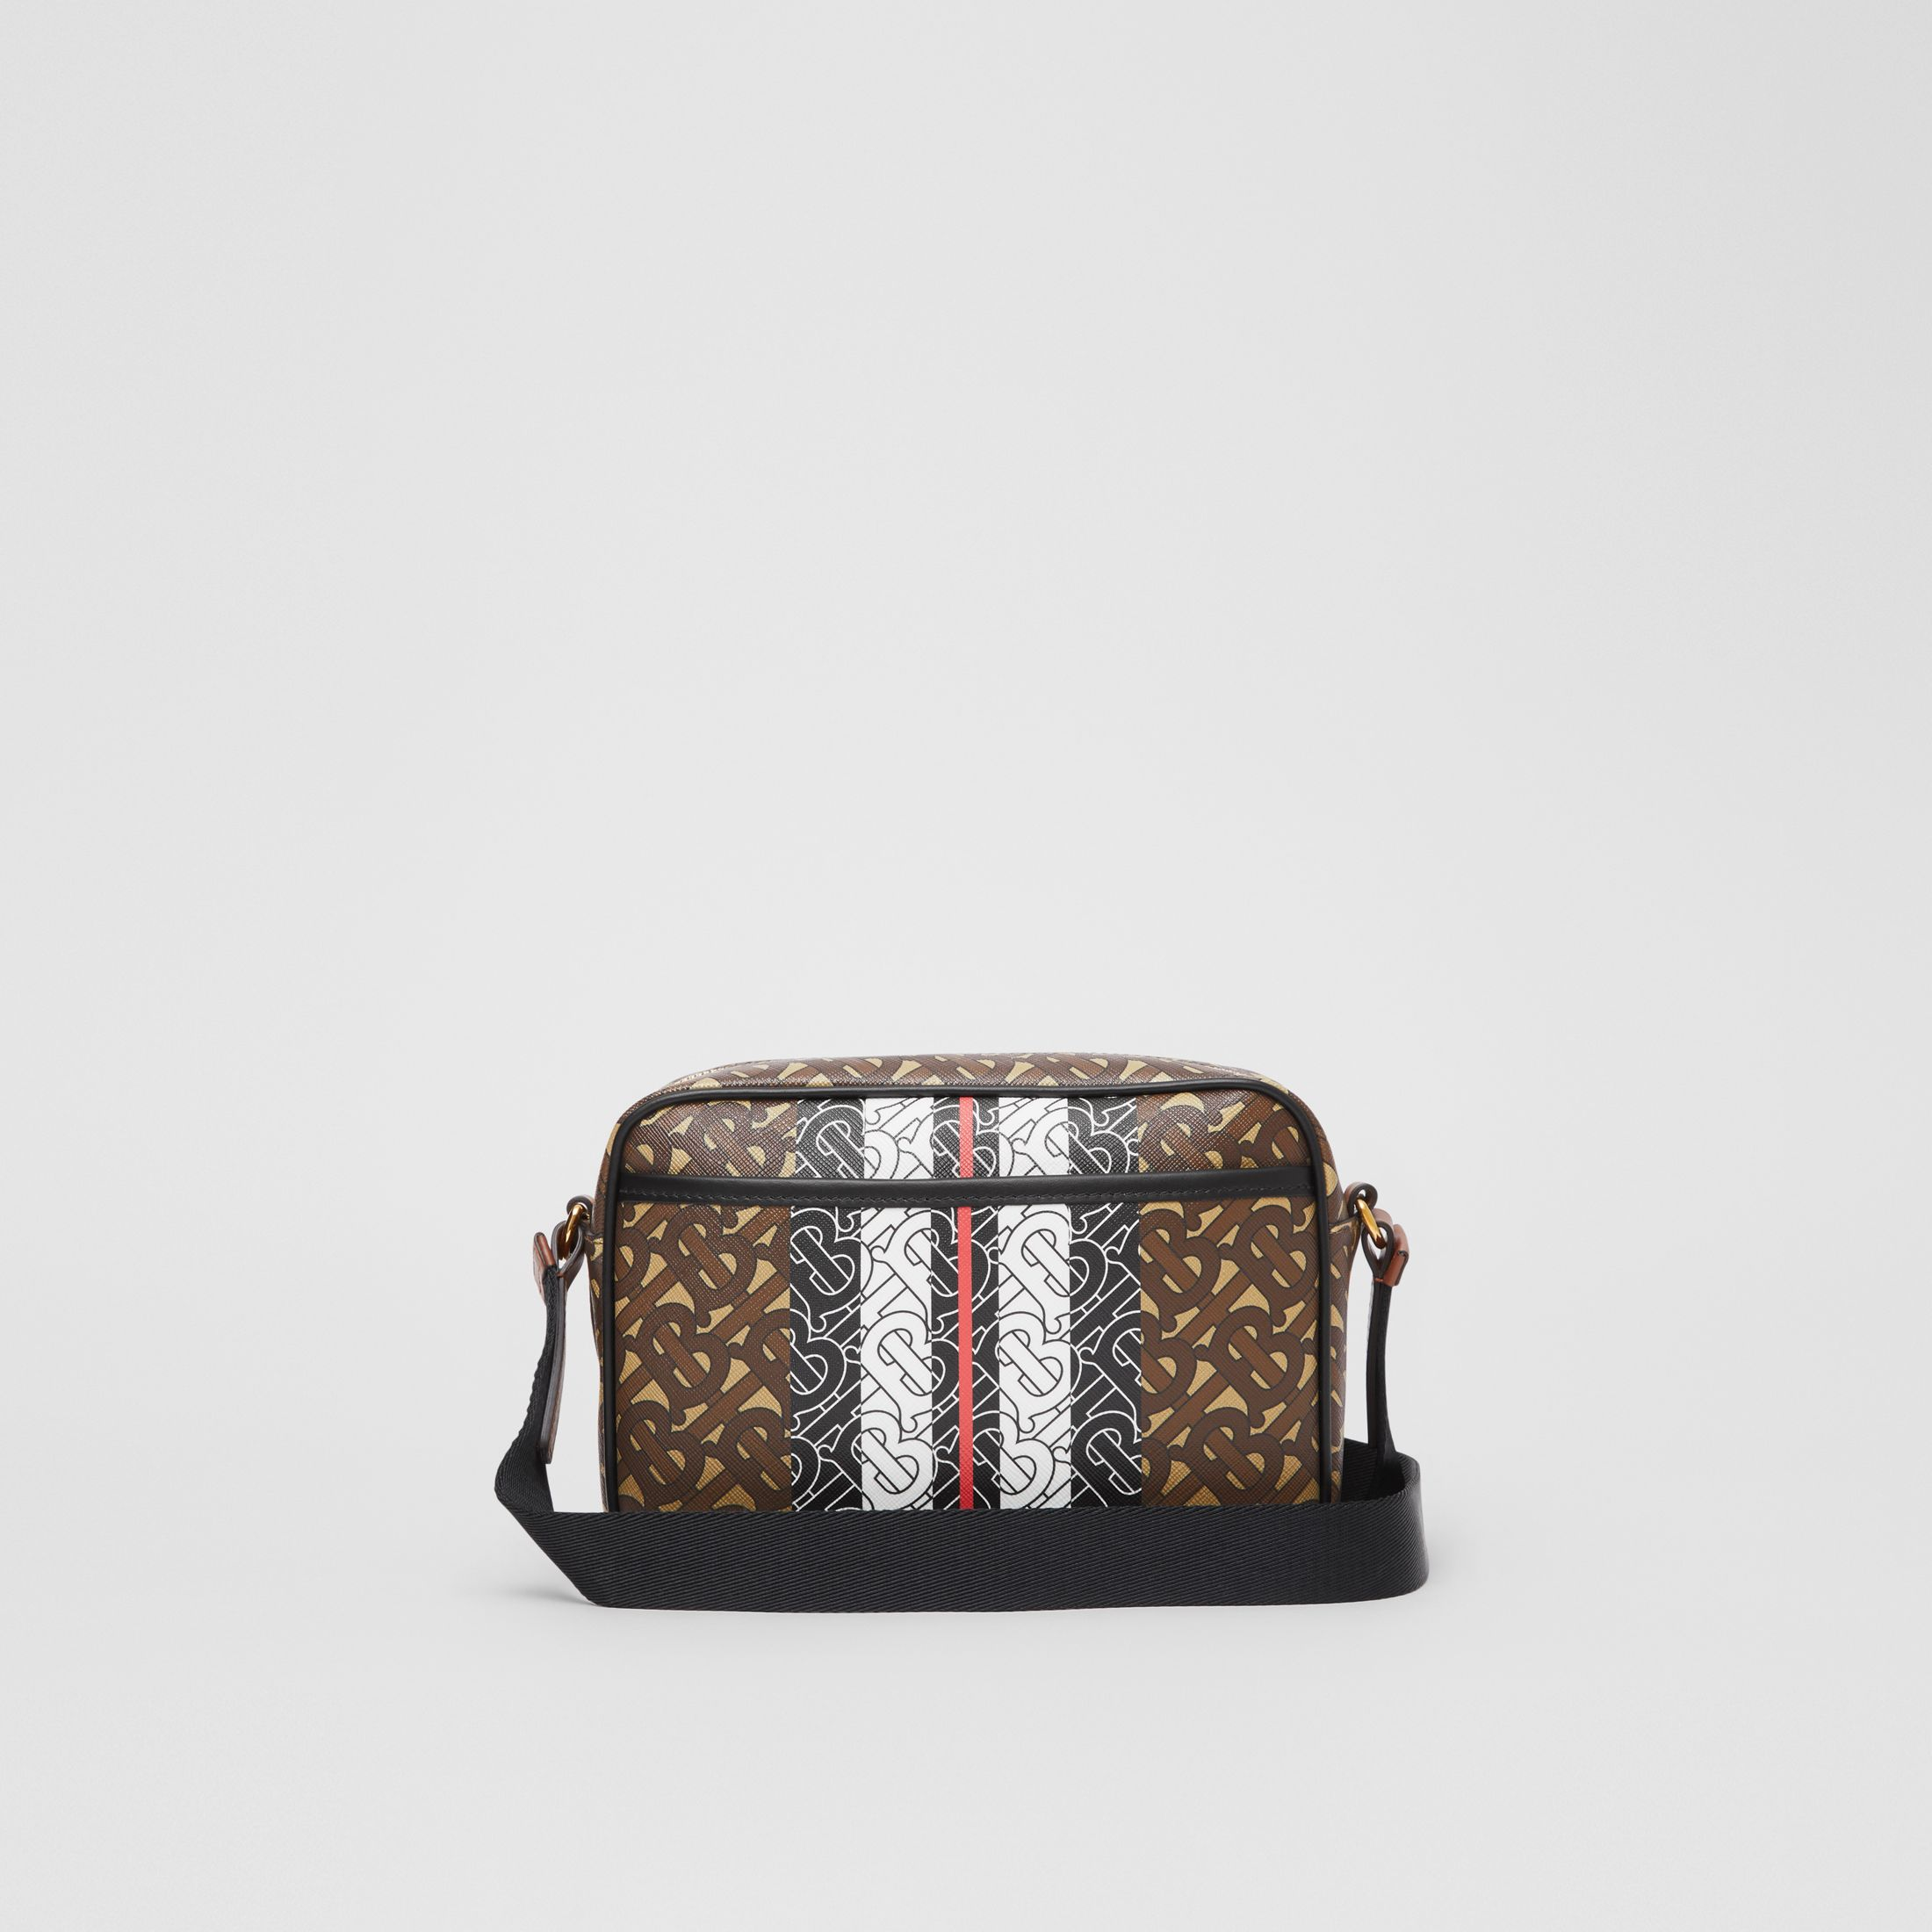 Burberry cross body bag - £690 - The cross body bag is now officially a thing. If you must have one, make yours a Burberry.